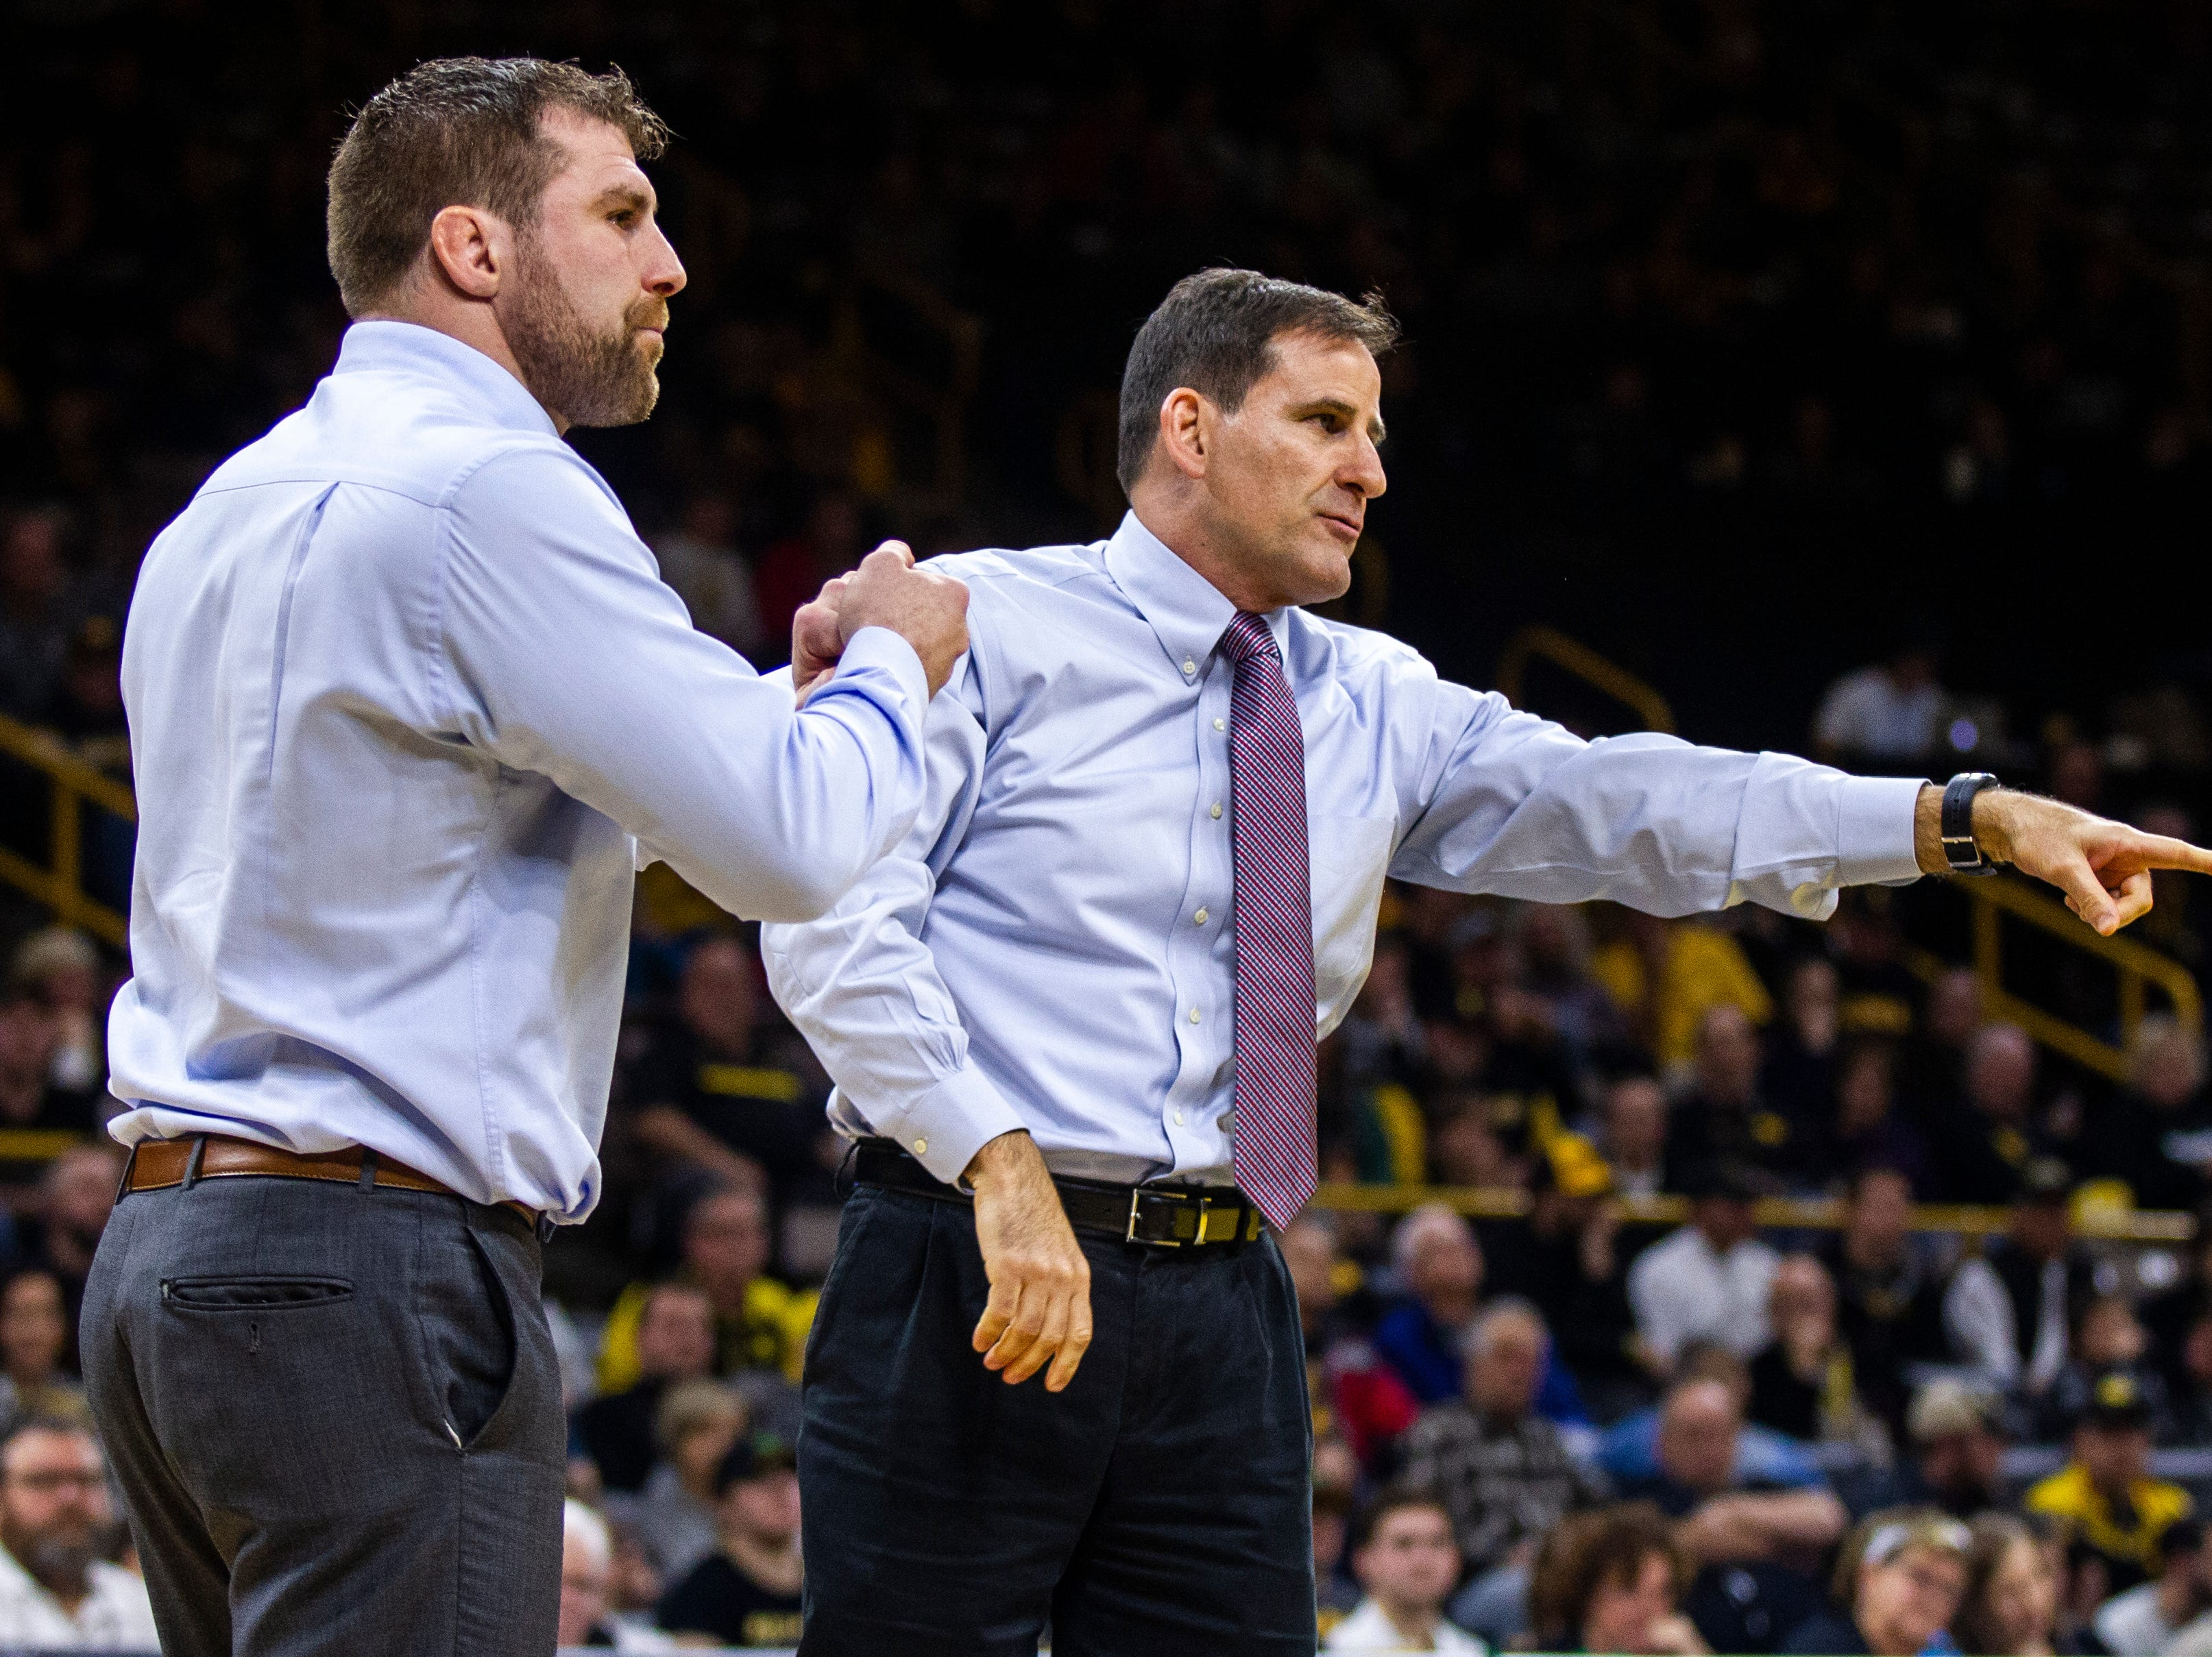 Lehigh head coach Pat Santoro, right, and volunteer assistant coach Zach Rey call a challenge during a NCAA wrestling dual on Saturday, Dec. 8, 2018, at Carver-Hawkeye Arena in Iowa City.